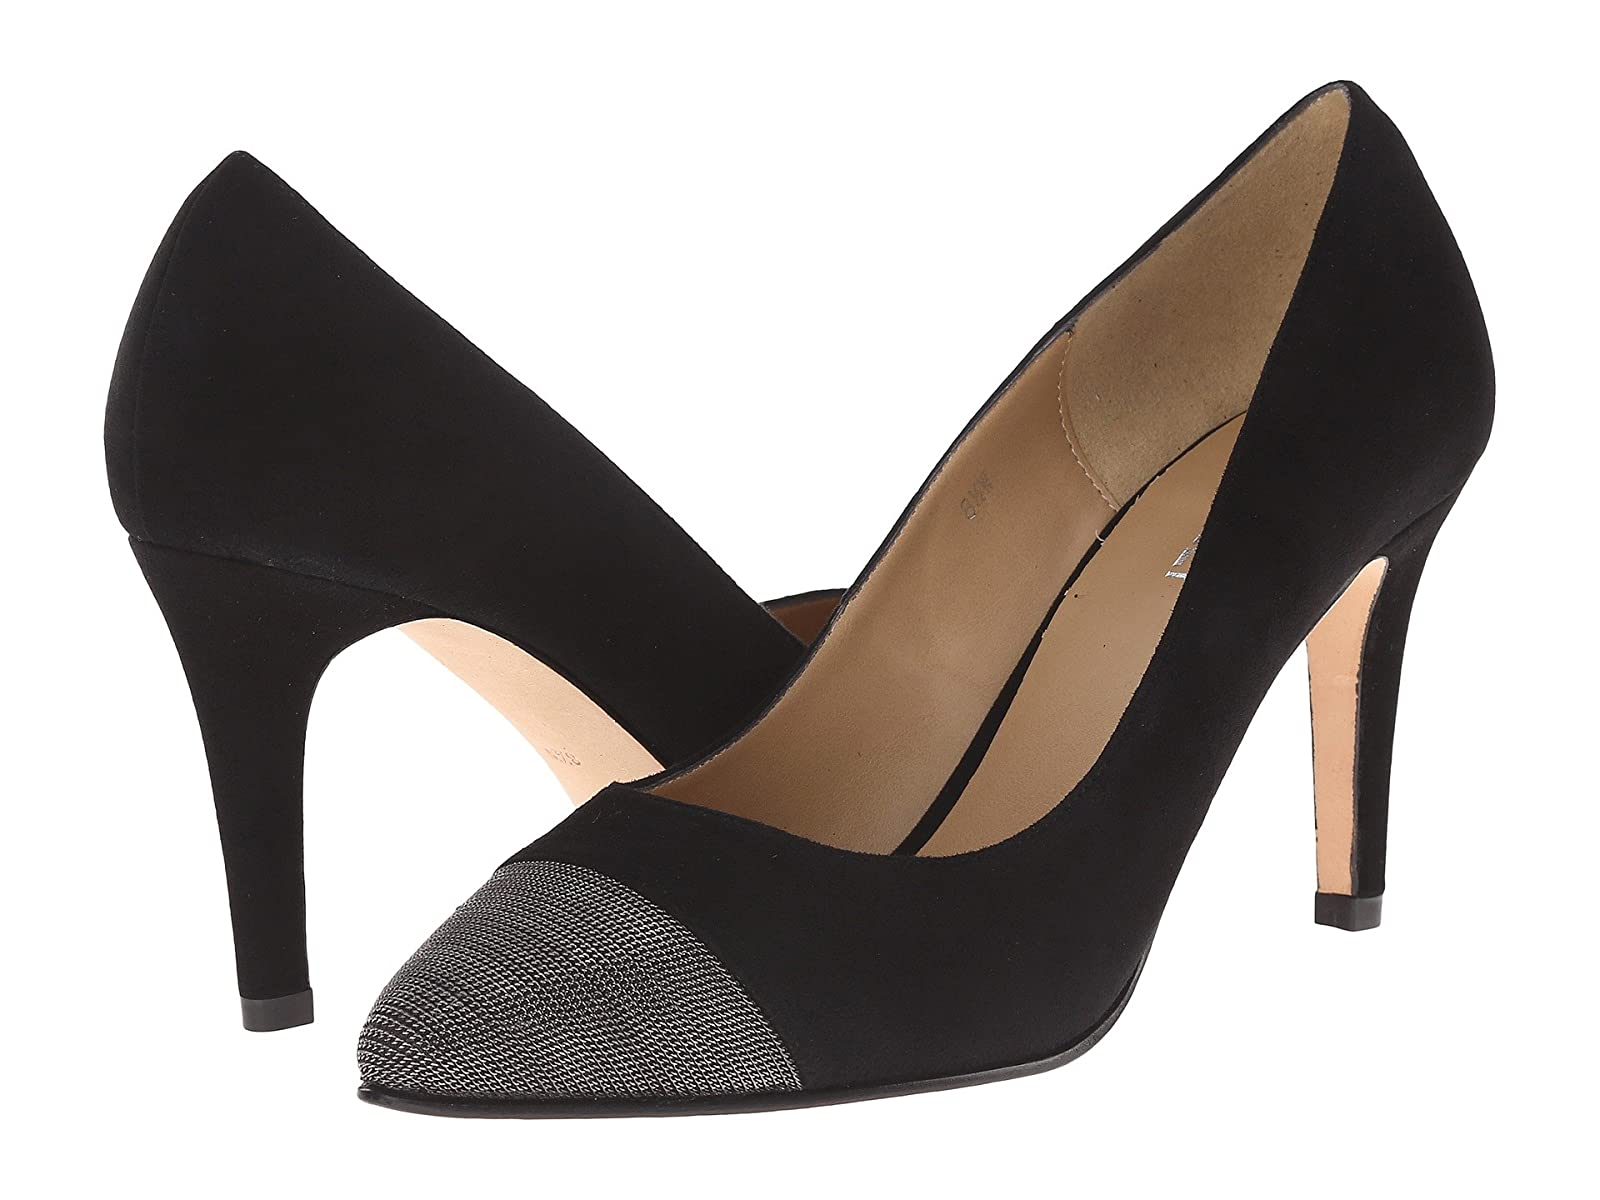 Vaneli AnabelCheap and distinctive eye-catching shoes